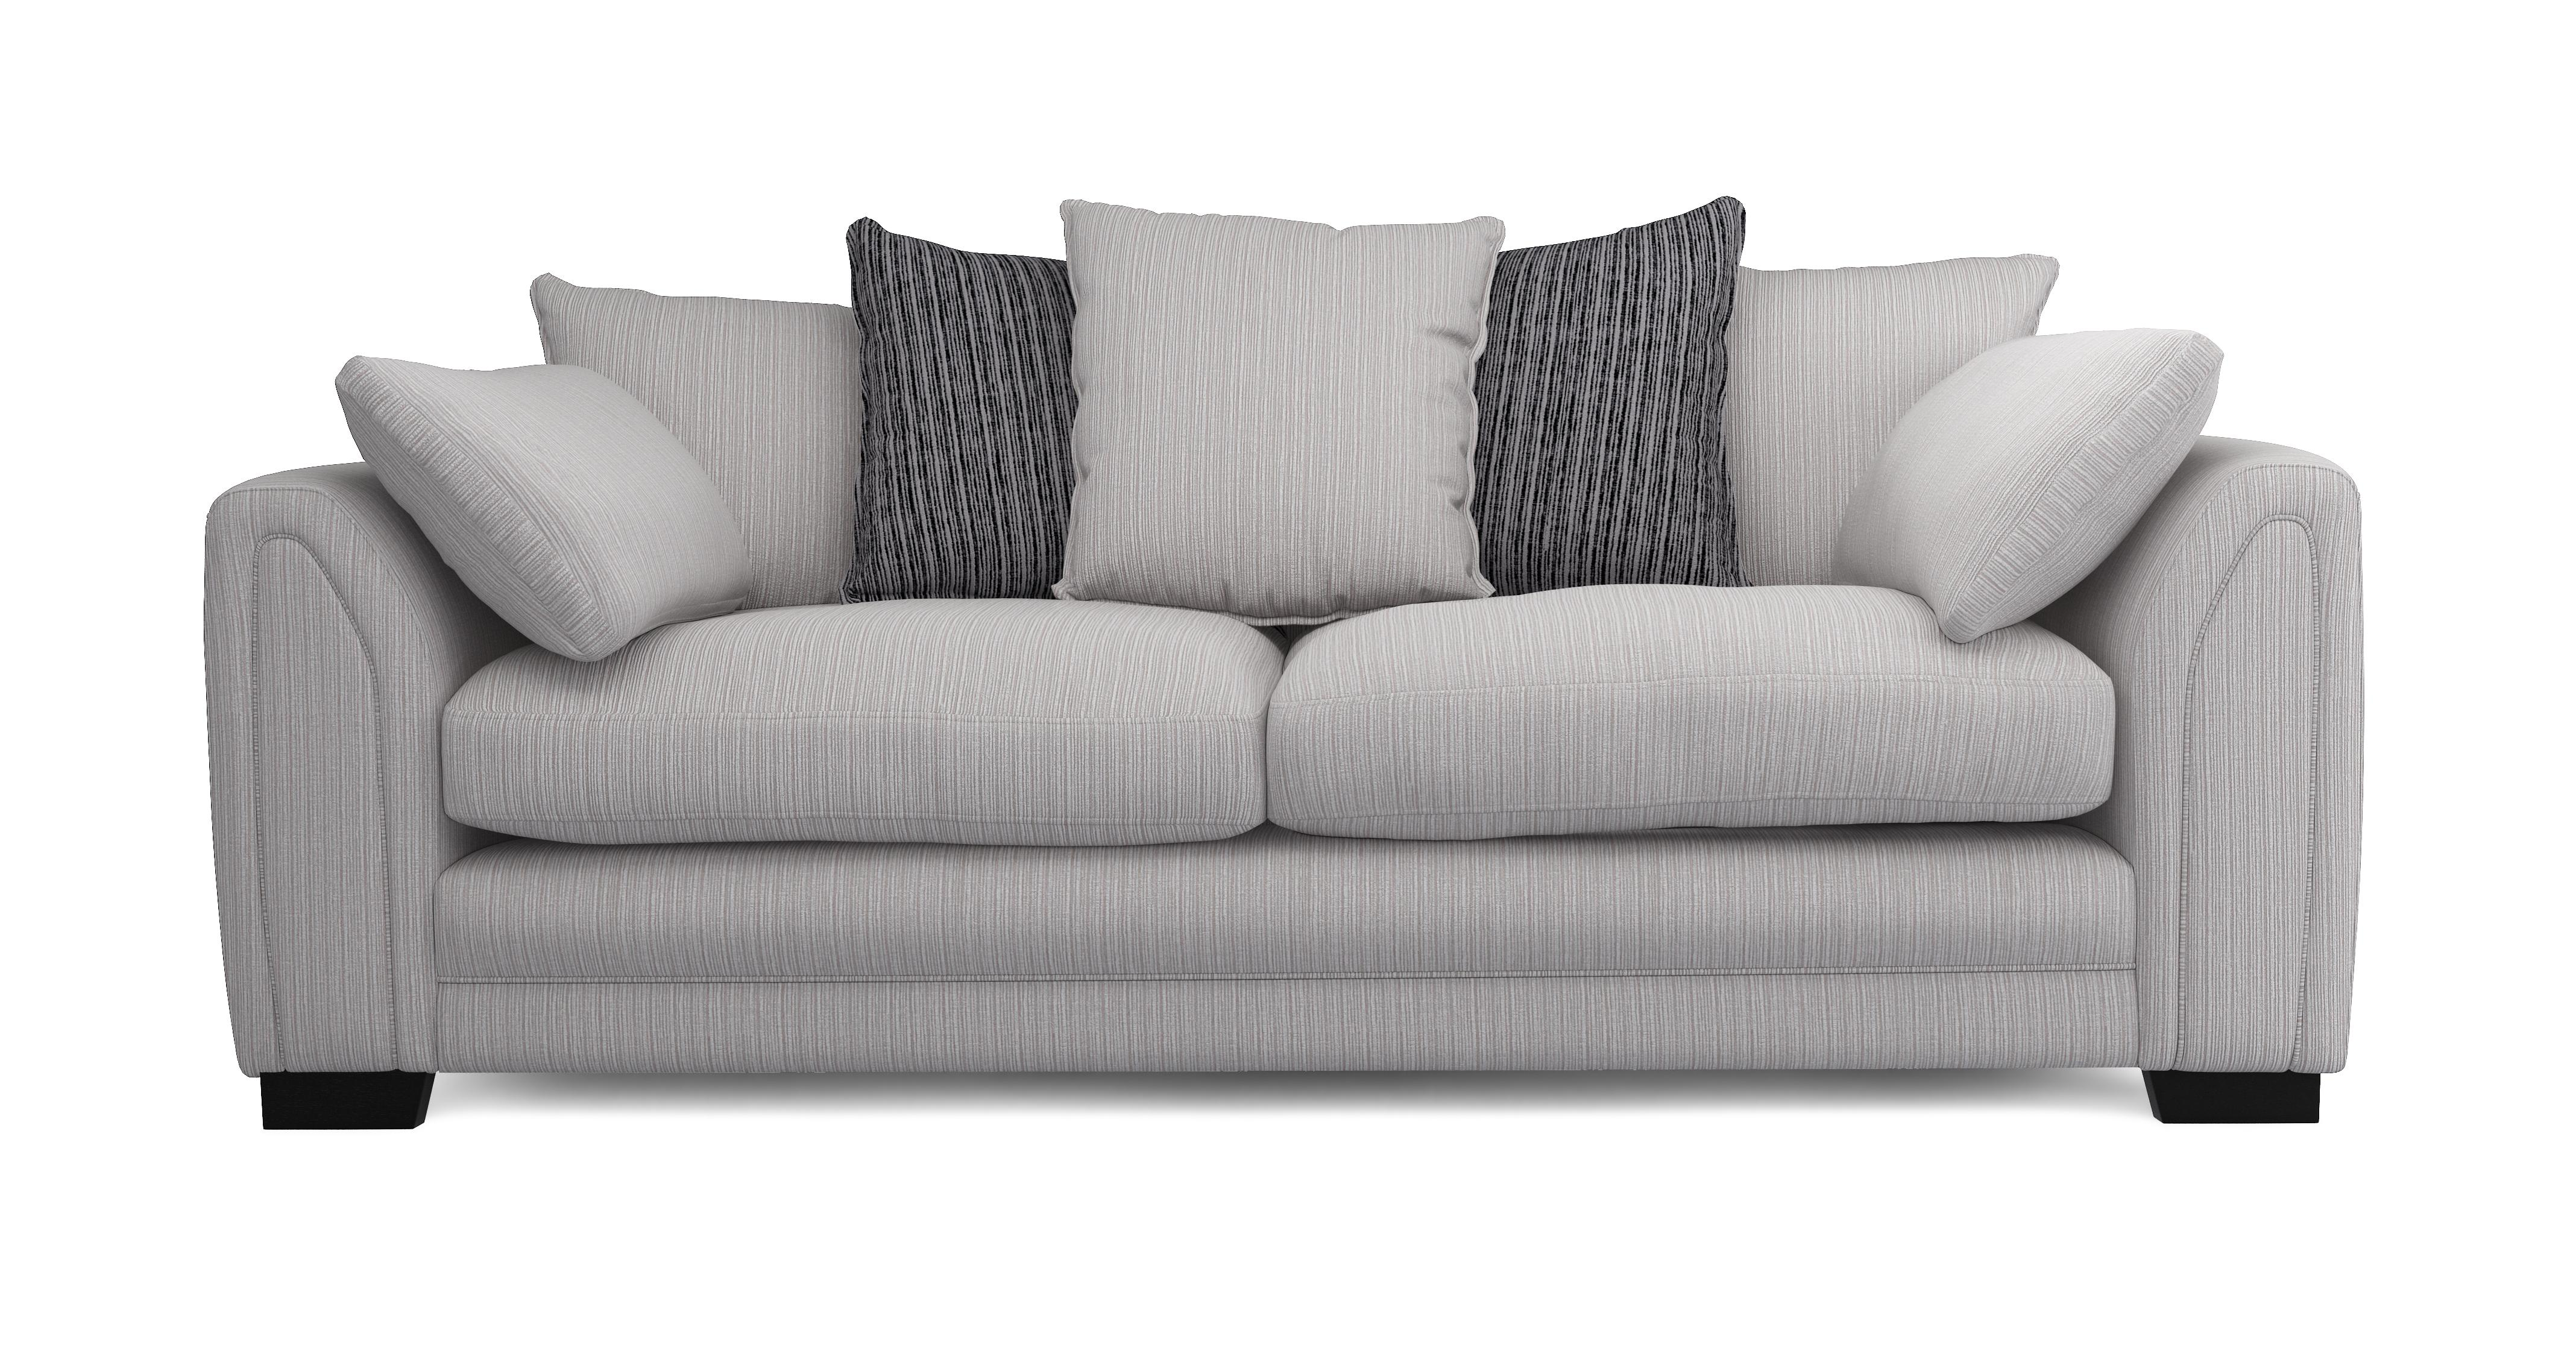 About the Harlem: Pillow Back 4 Seater Sofa